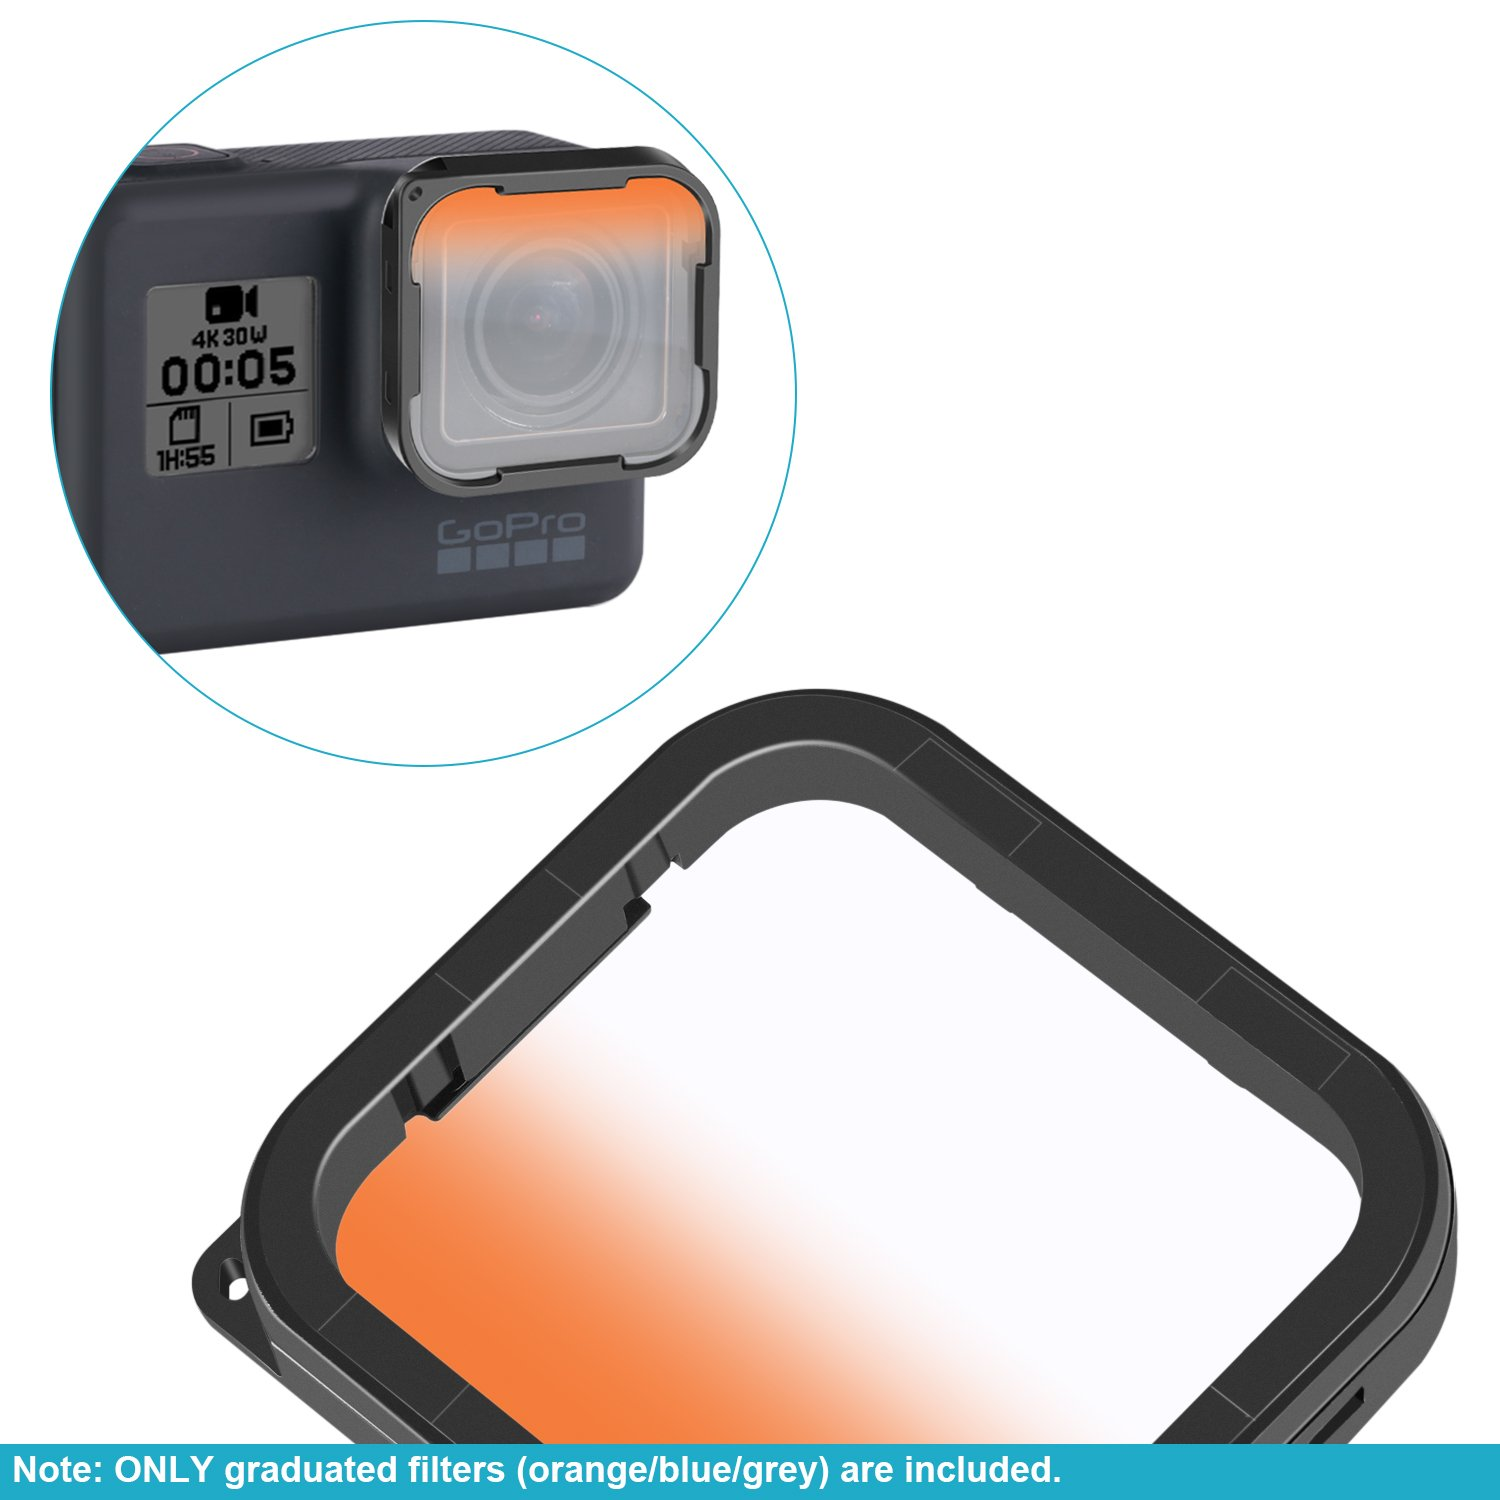 Snorkeling Neewer 3 Pack Dive Filter for GoPro Hero 6//5 Housing Enhances Color Under Various Photography Conditions for Diving Graduated Orange//Blue//Grey and Scuba Diving